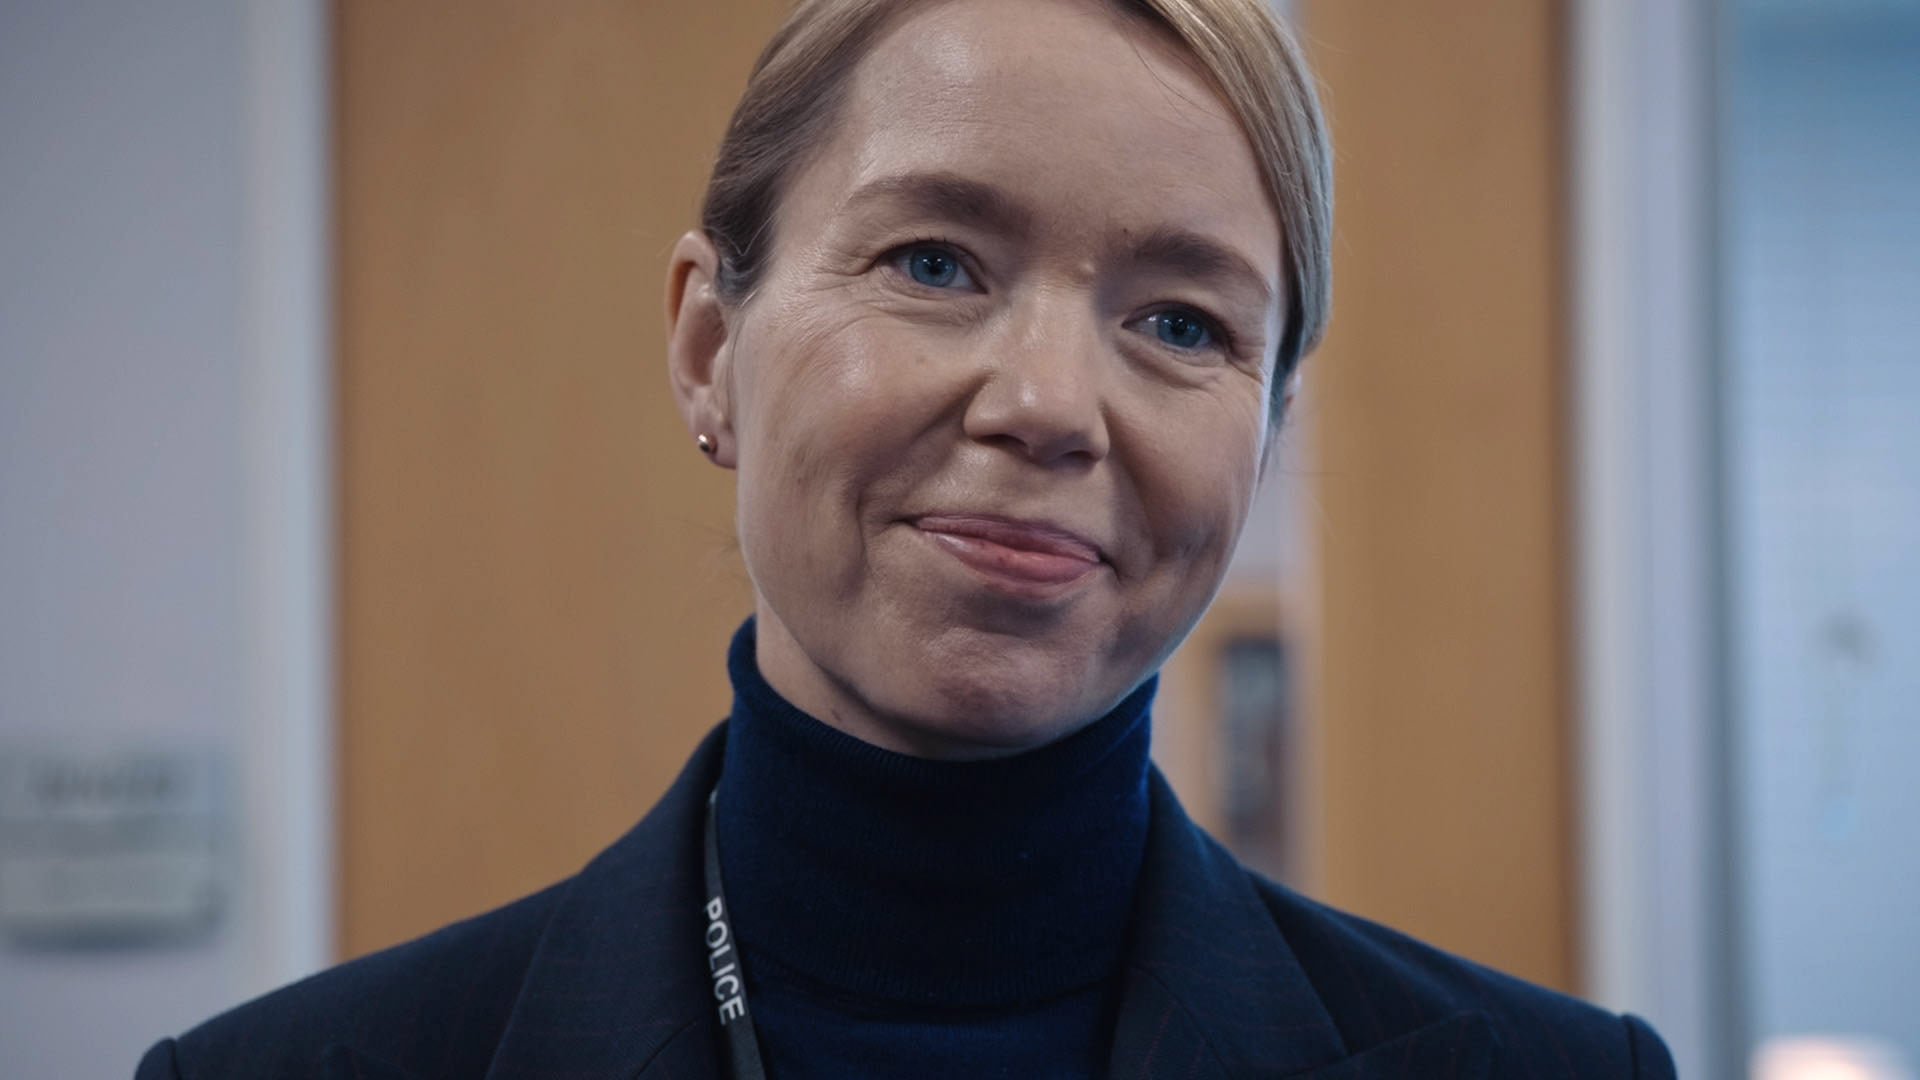 WARNING: Embargoed for publication until 00:00:01 on 13/04/2021 - Programme Name: Line of Duty S6 - TX: n/a - Episode: Line Of Duty - Ep 5 (No. n/a) - Picture Shows: *NOT FOR PUBLICATION UNIL 00:01HRS, TUESDAY 13th APRIL, 2021* Carmichael (ANNA MAXWELL MARTIN) - (C) World Productions - Photographer: Screen Grab